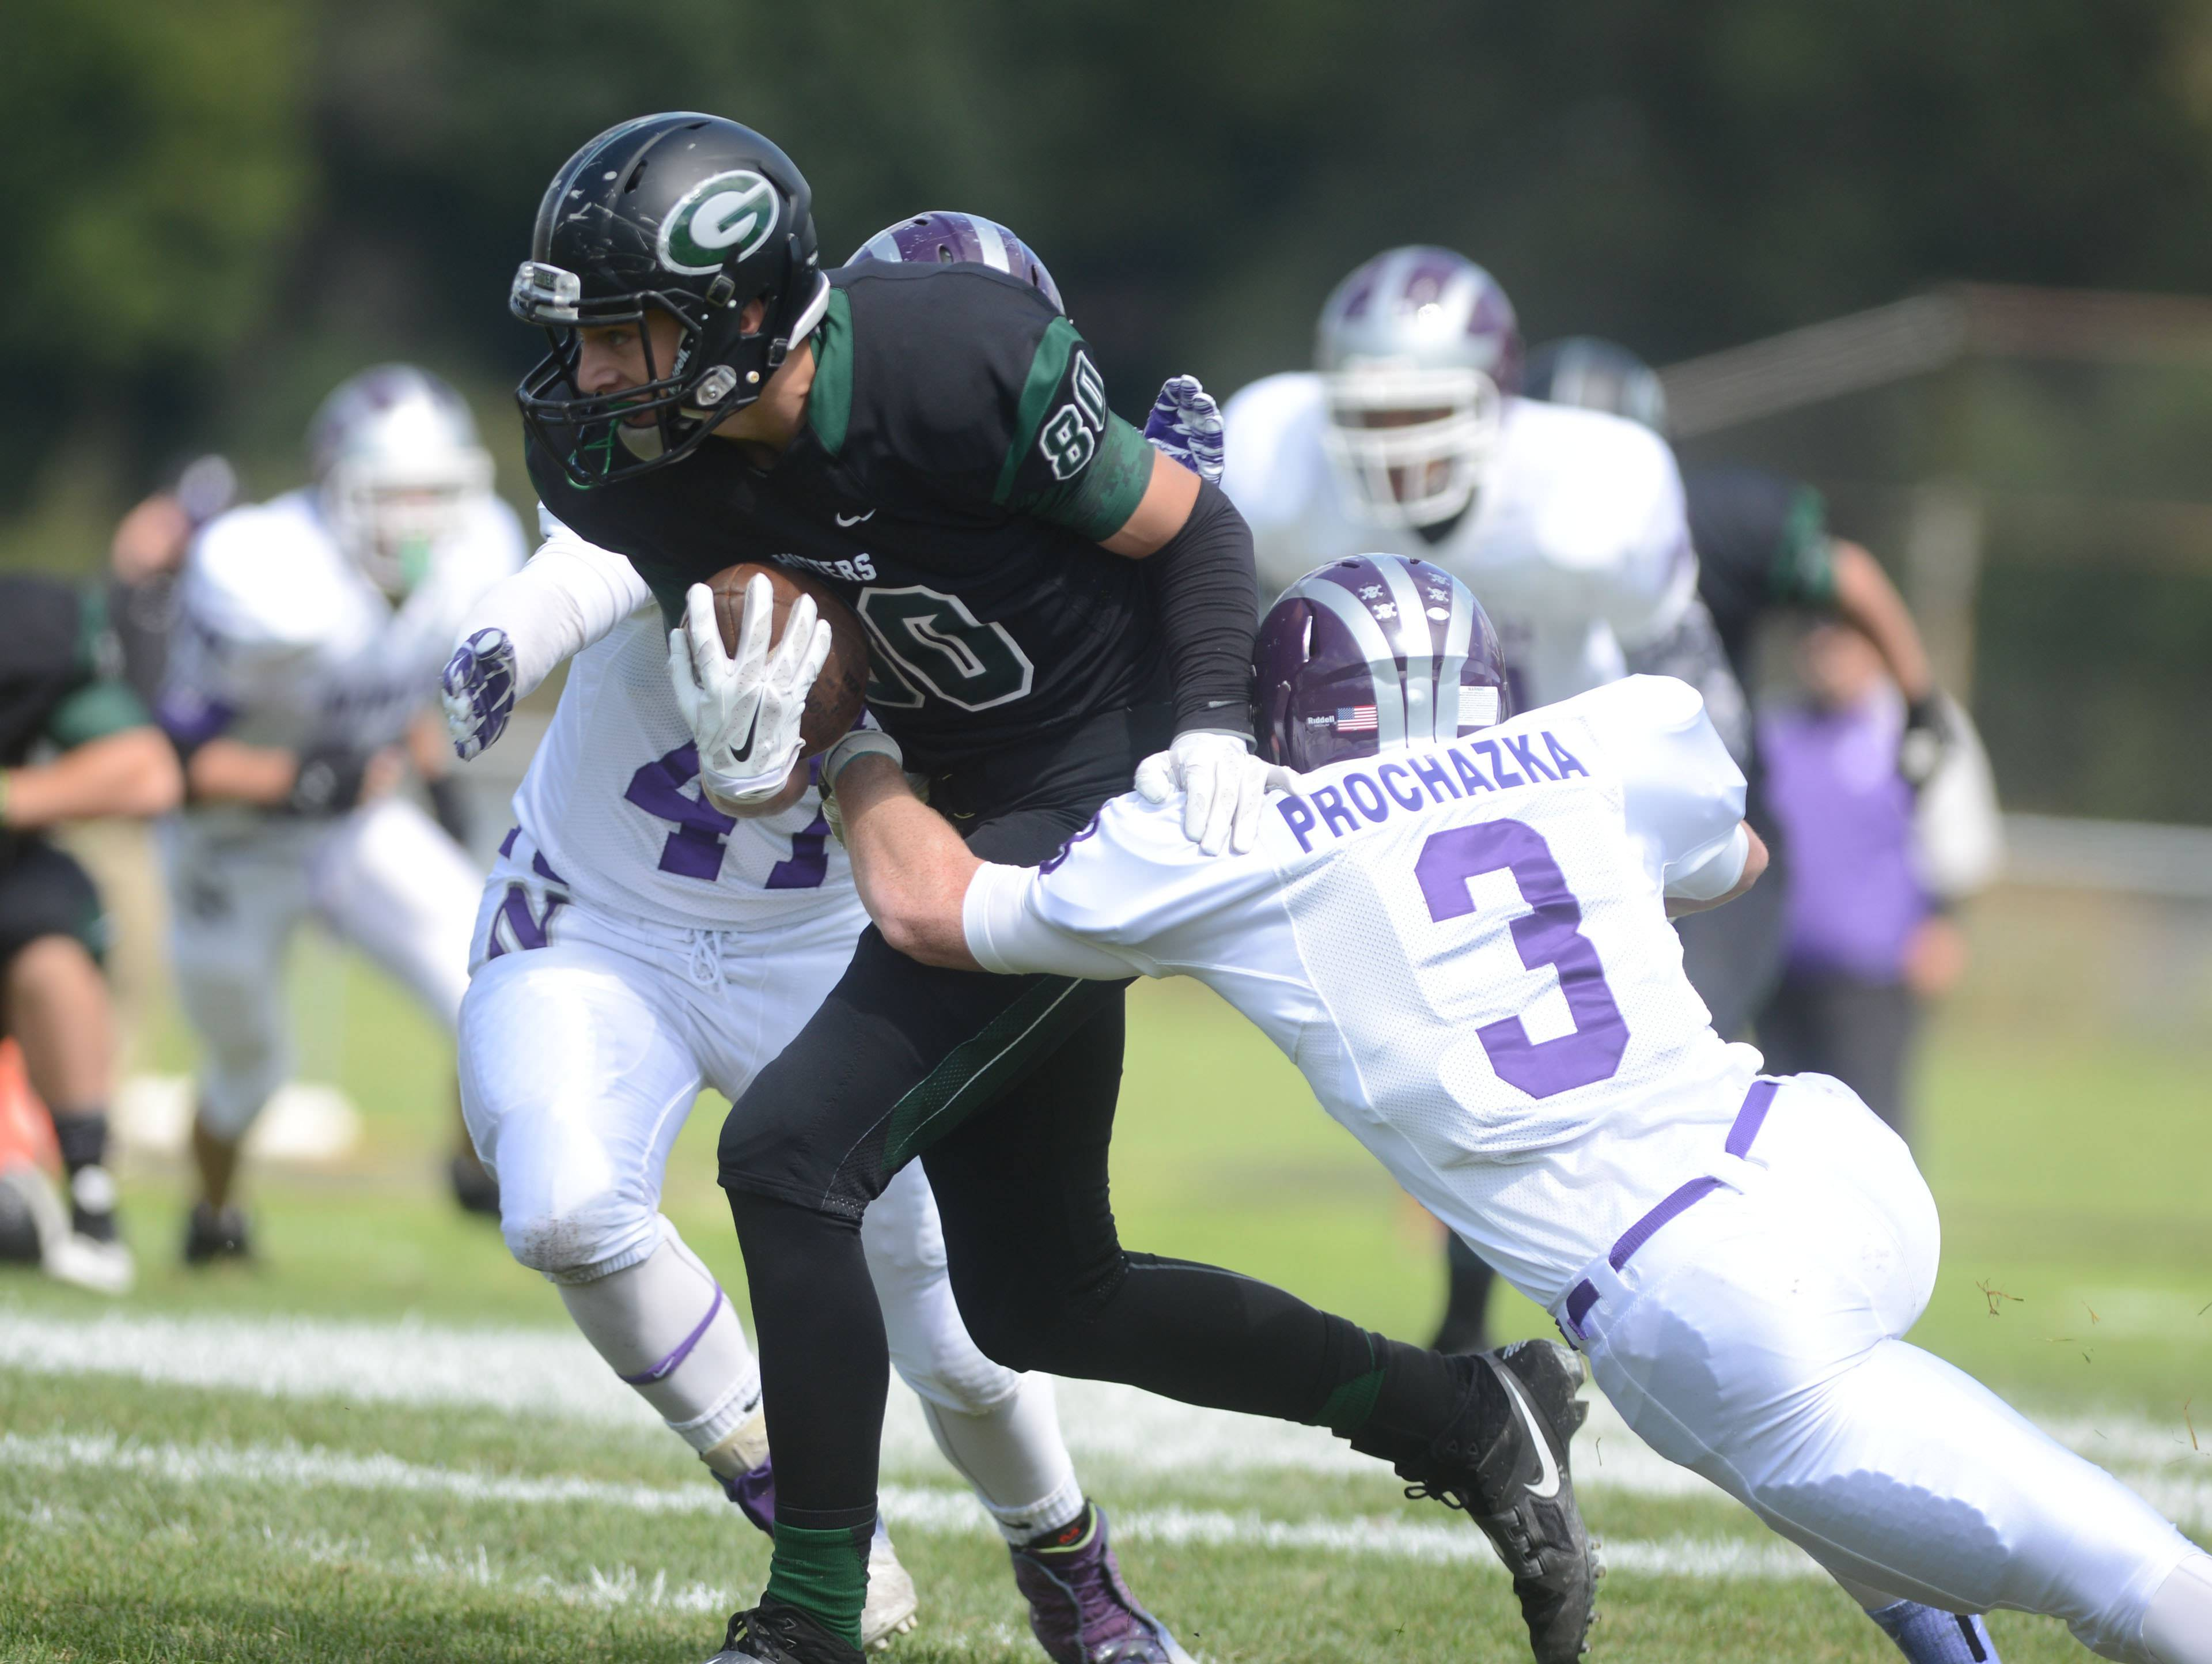 Aidan Gould of Glenbard West moves the ball as Michael Prochazka of Downers Grove North during the Downers Grove North at Glenbard West football game Saturday.